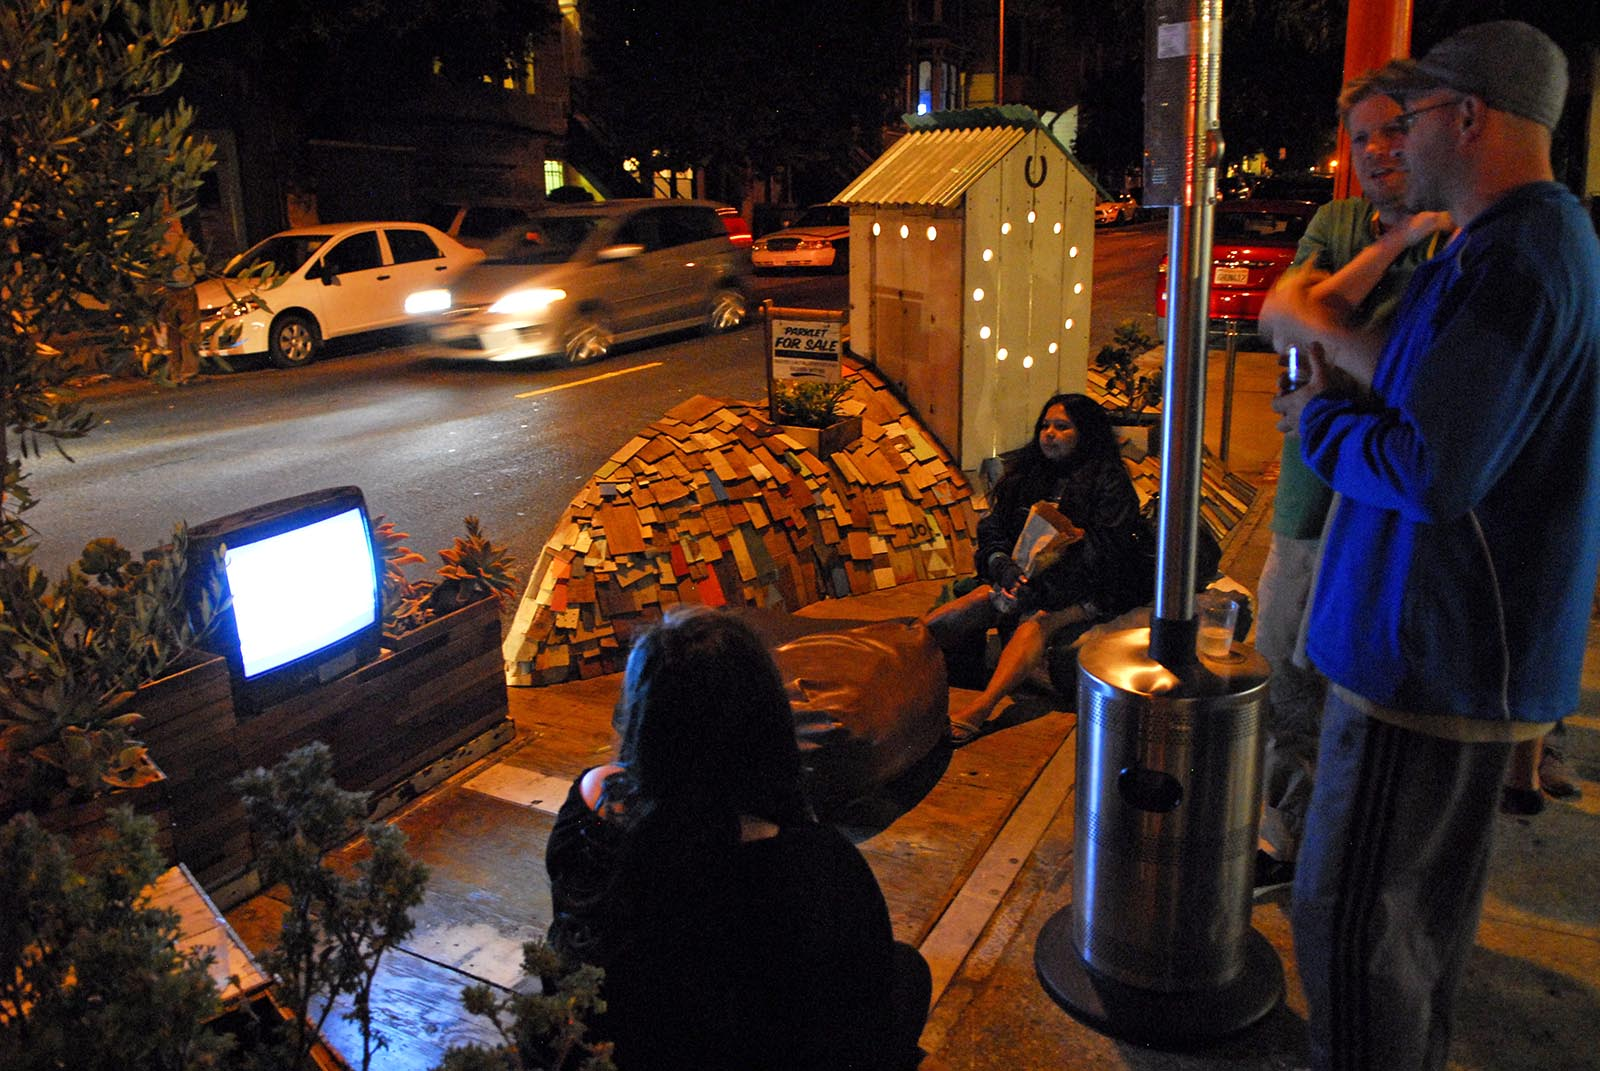 SNAP: Giants in a Parklet